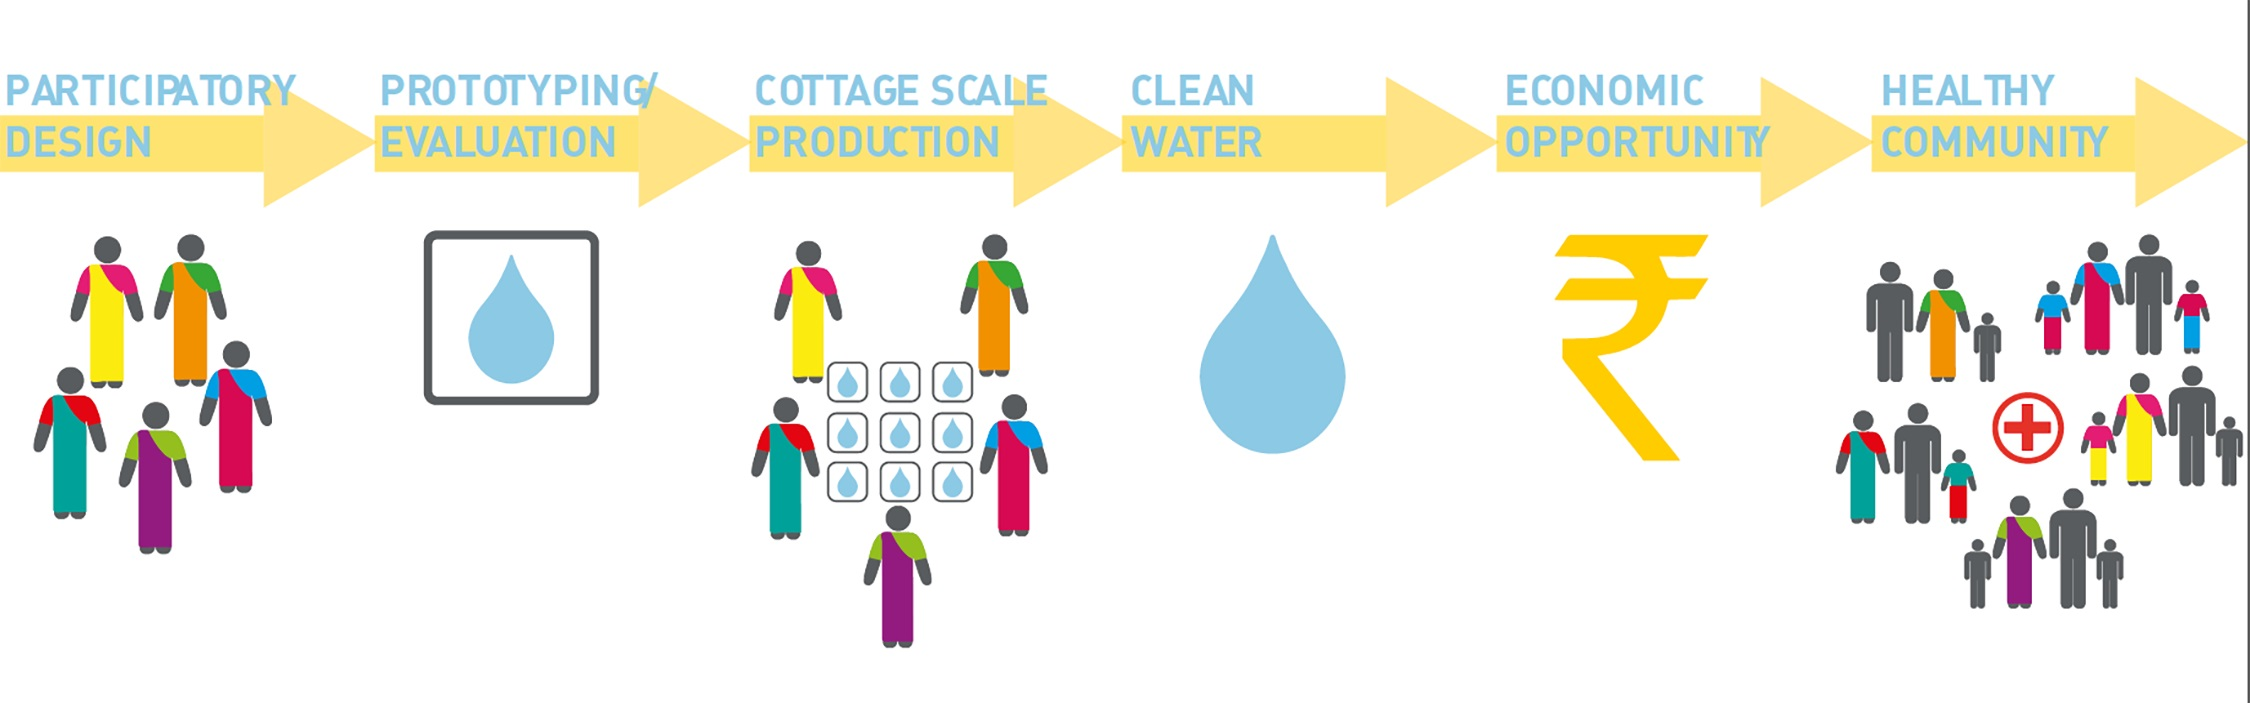 Infographic demonstrating stages of development in CleanCube project, from production to final impact in the community